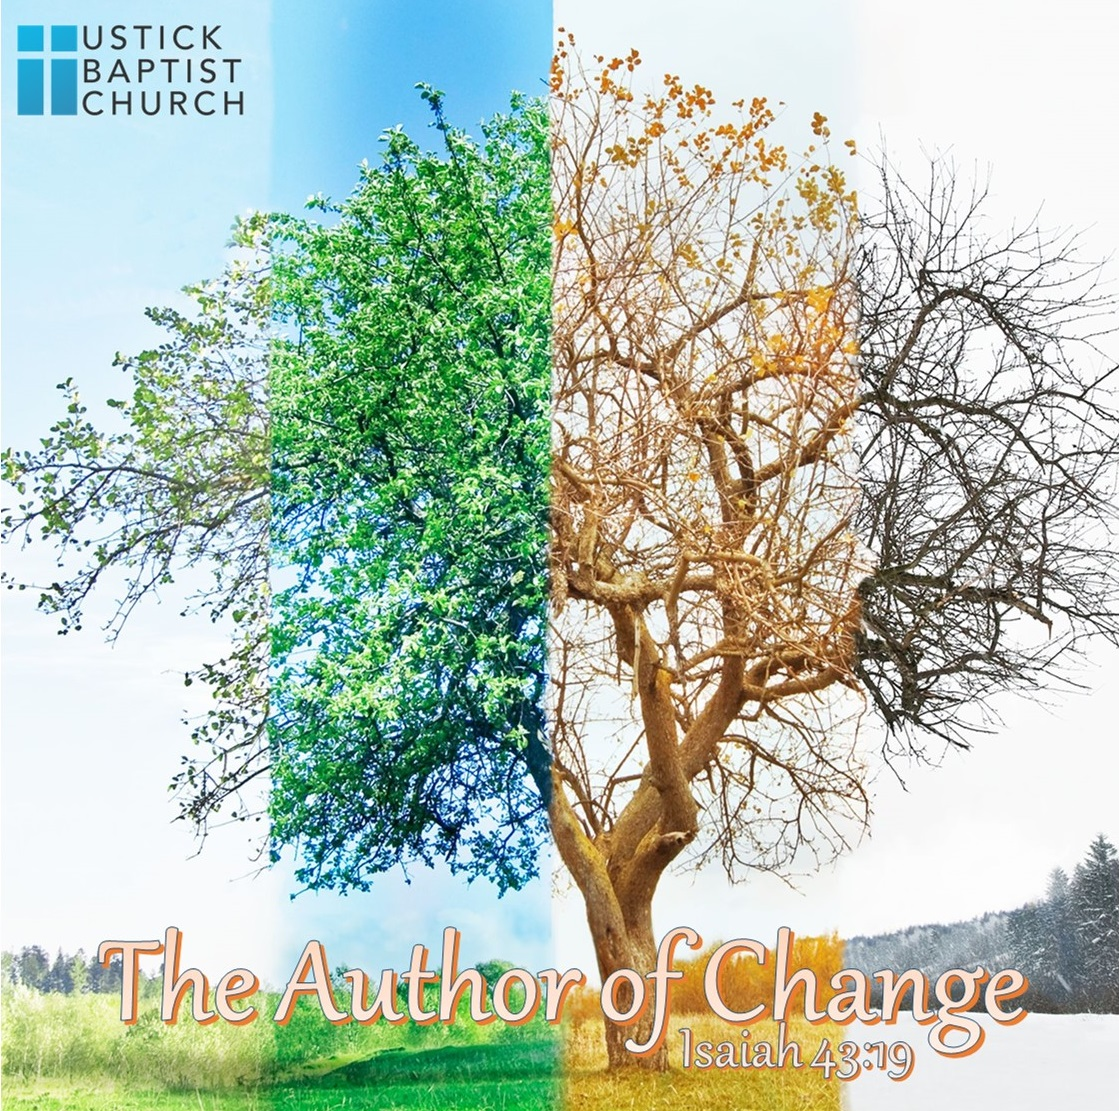 The Author of Change